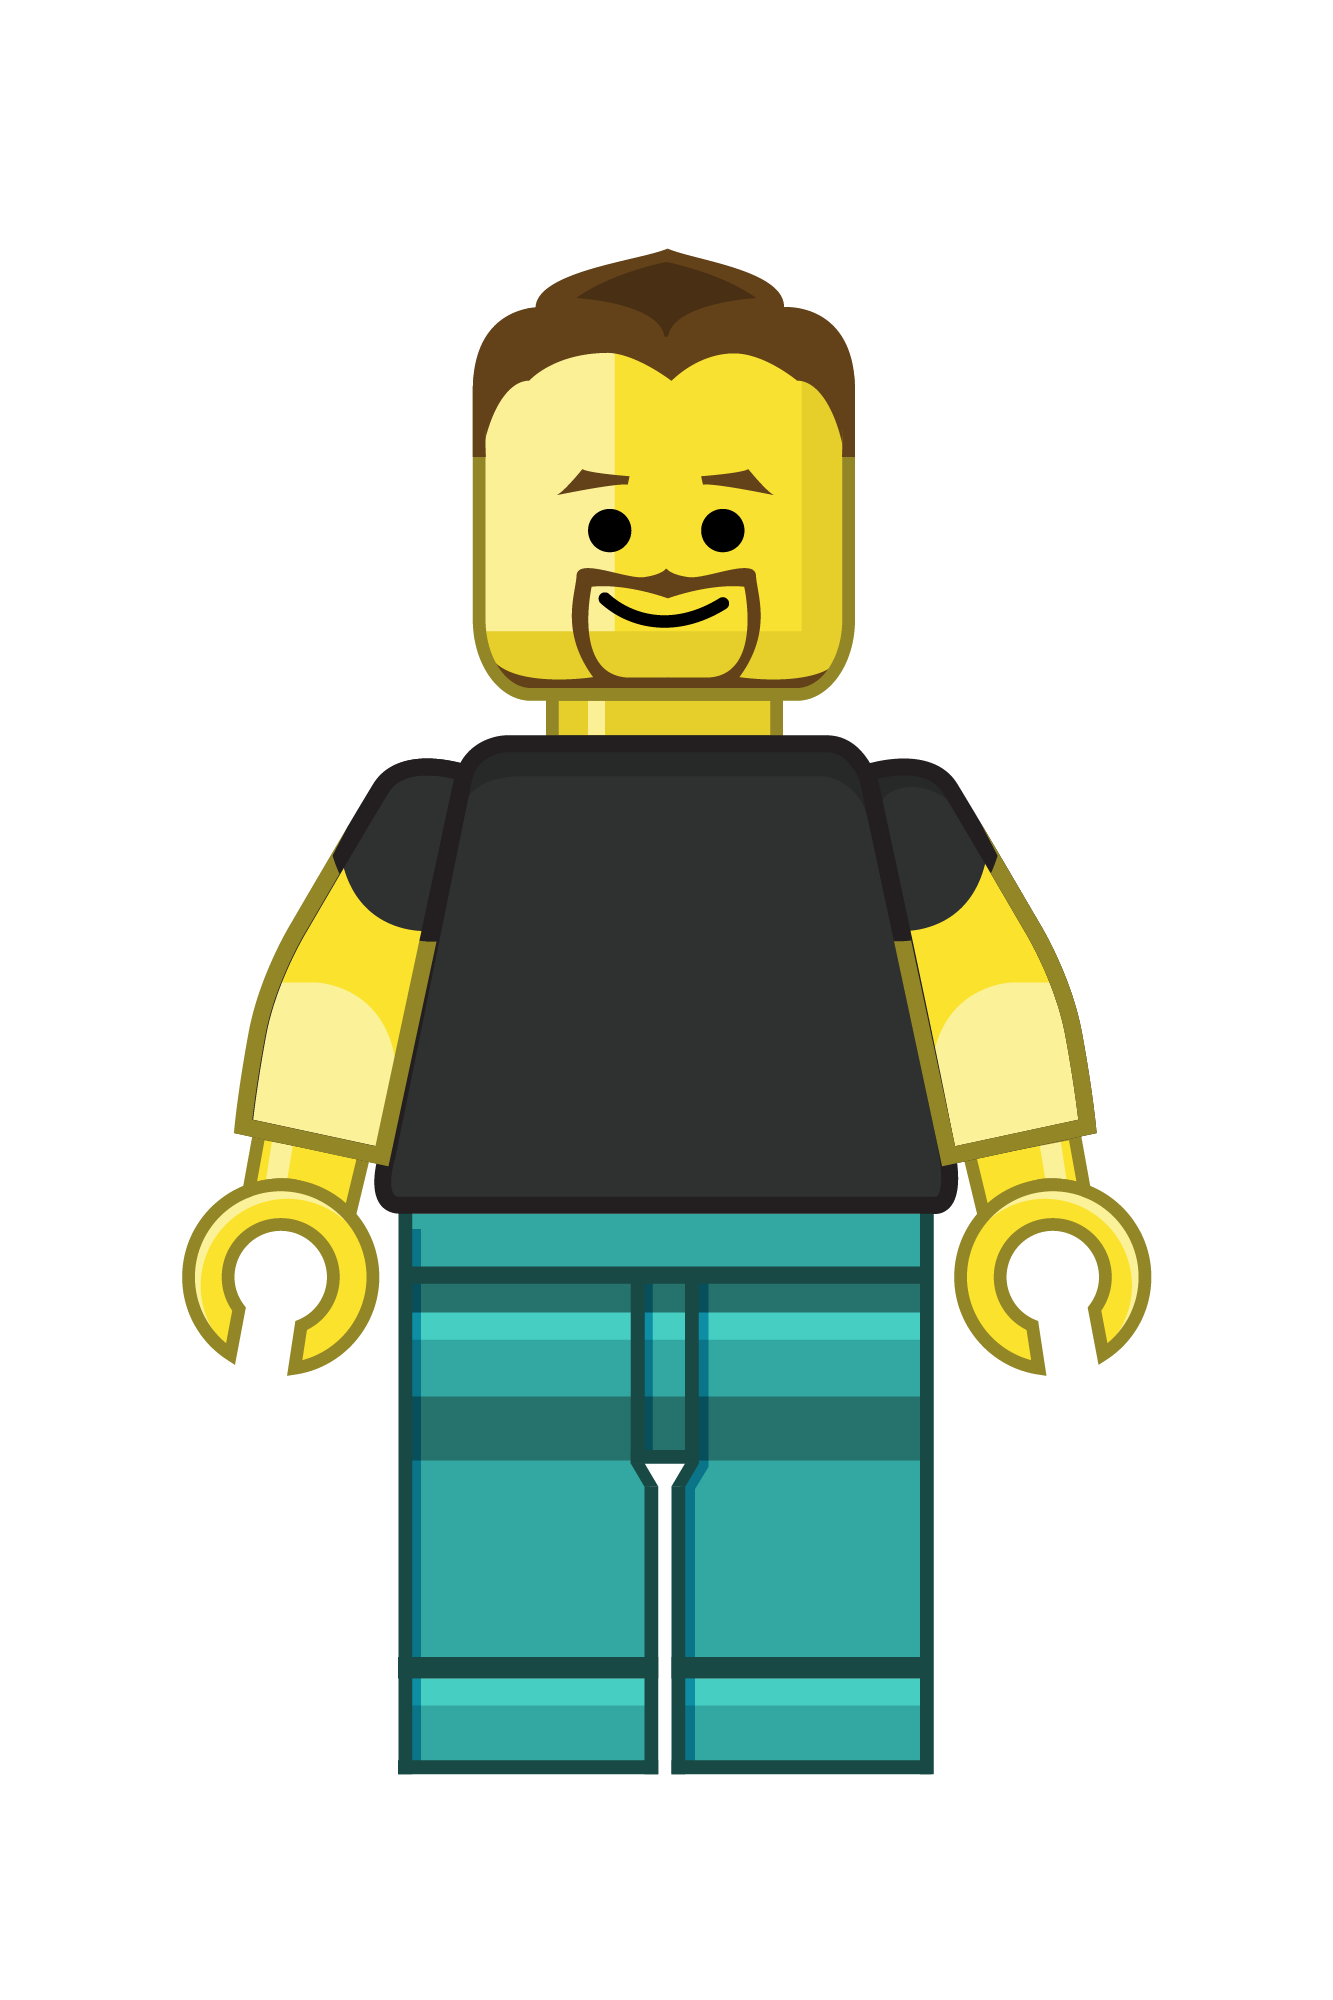 bITD_lego_BrotherElsey3.png